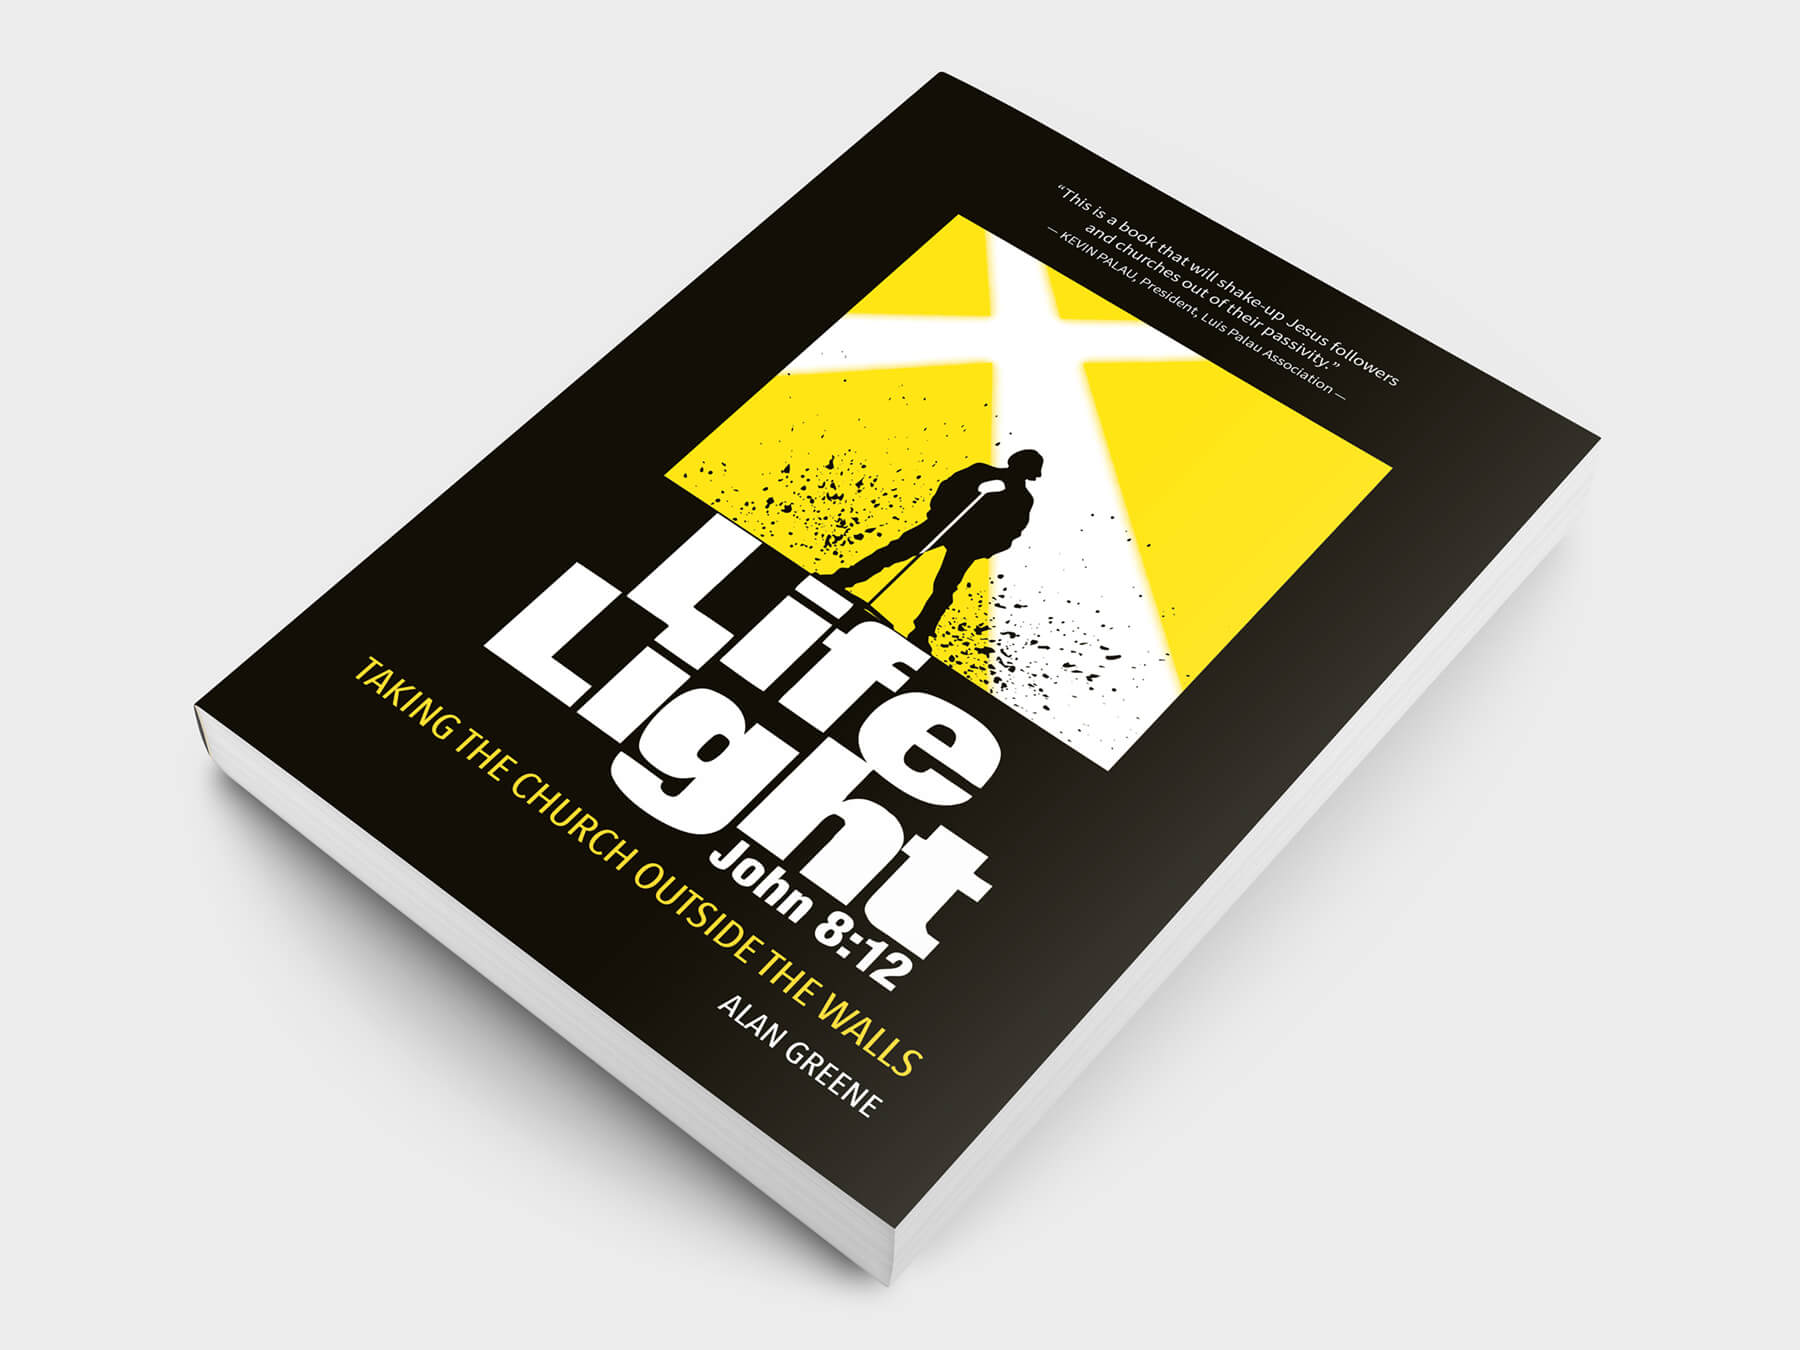 Lifelight Book